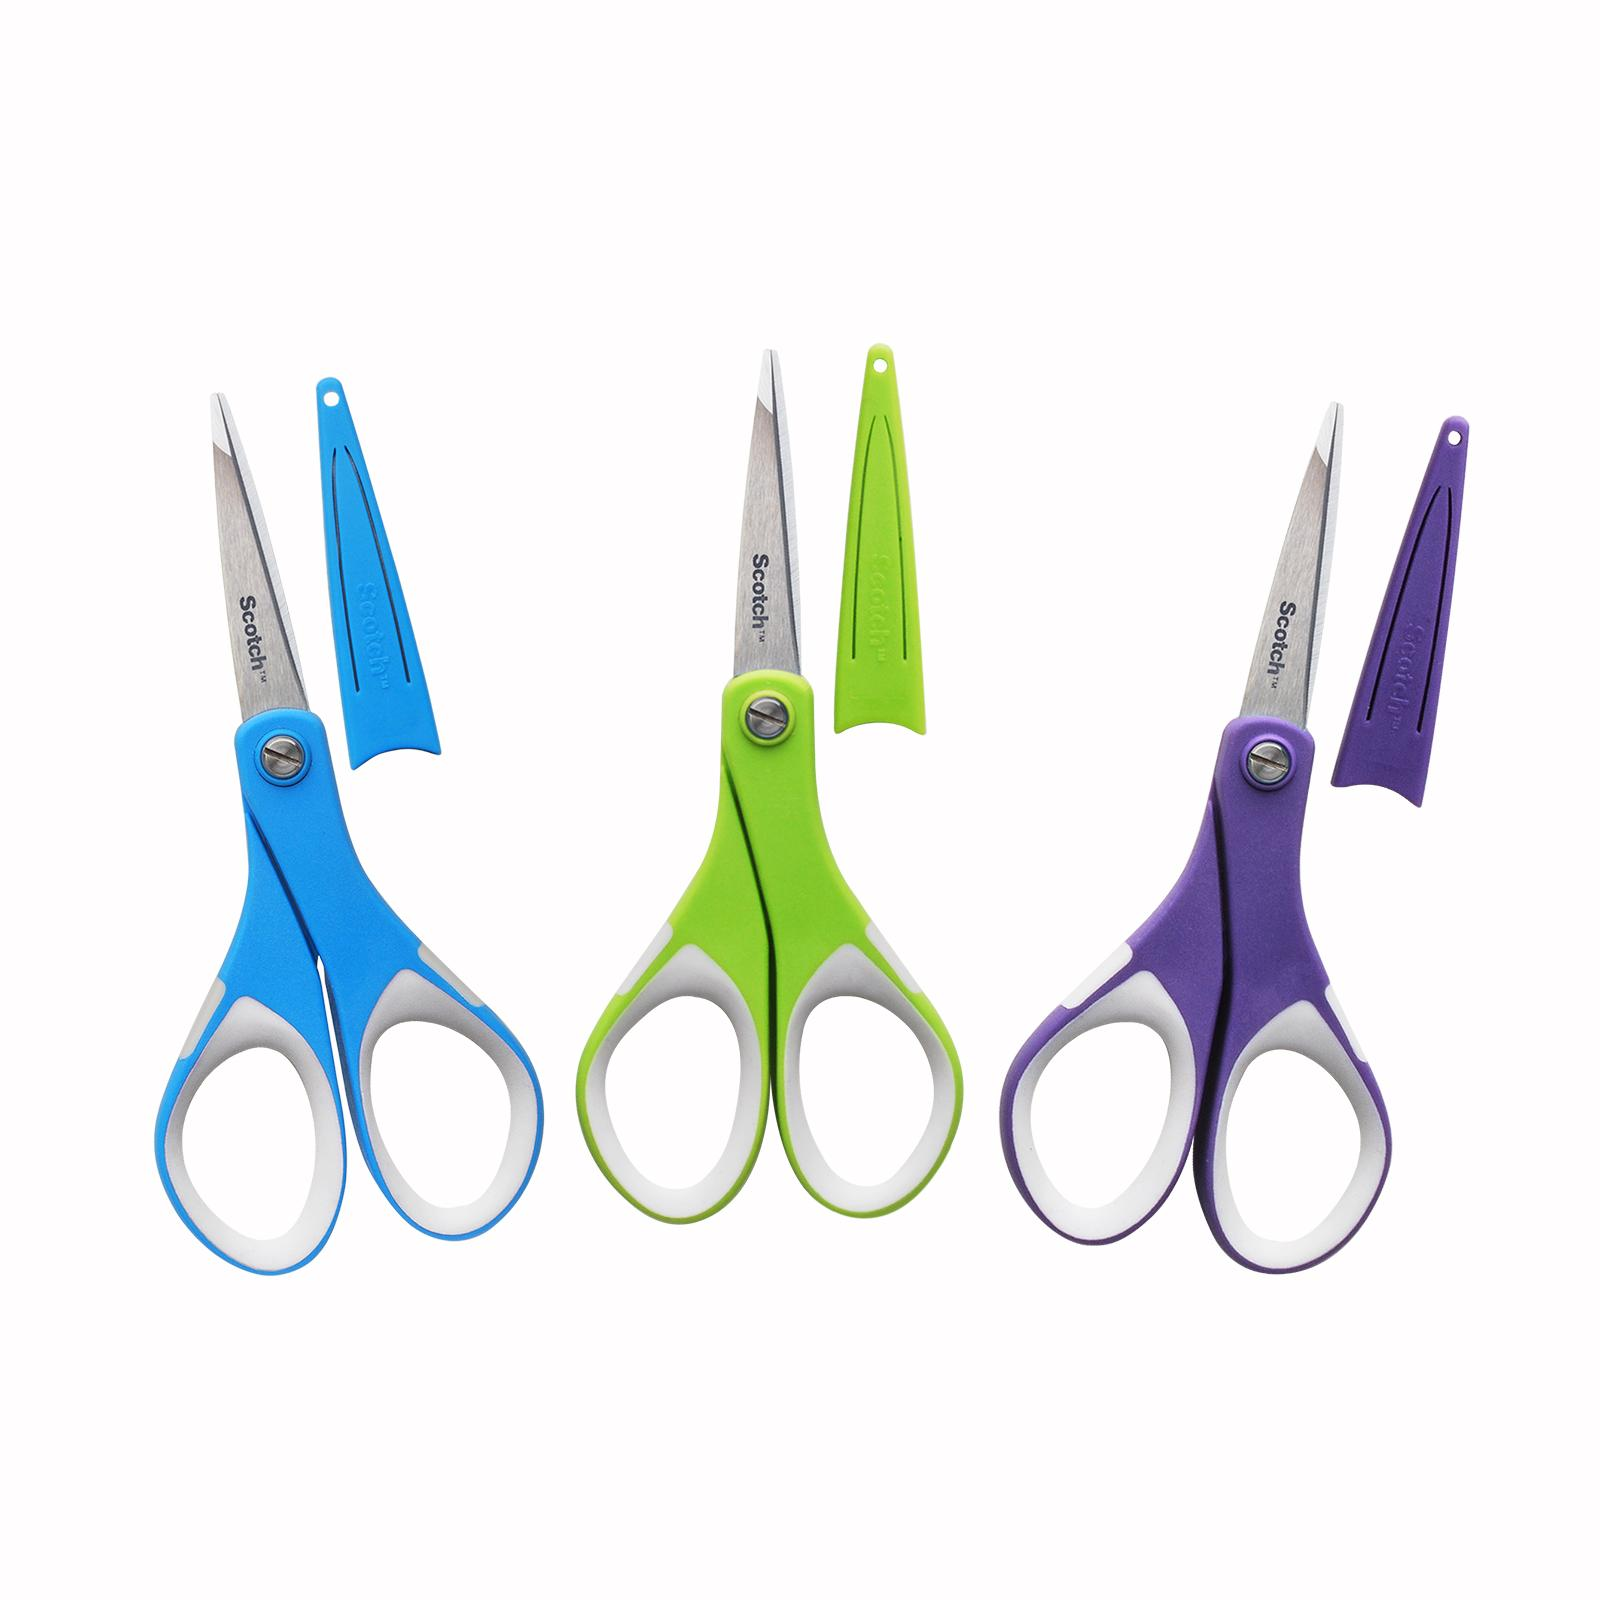 Scotch™ 1445 Sc Precision Scissors 5 In